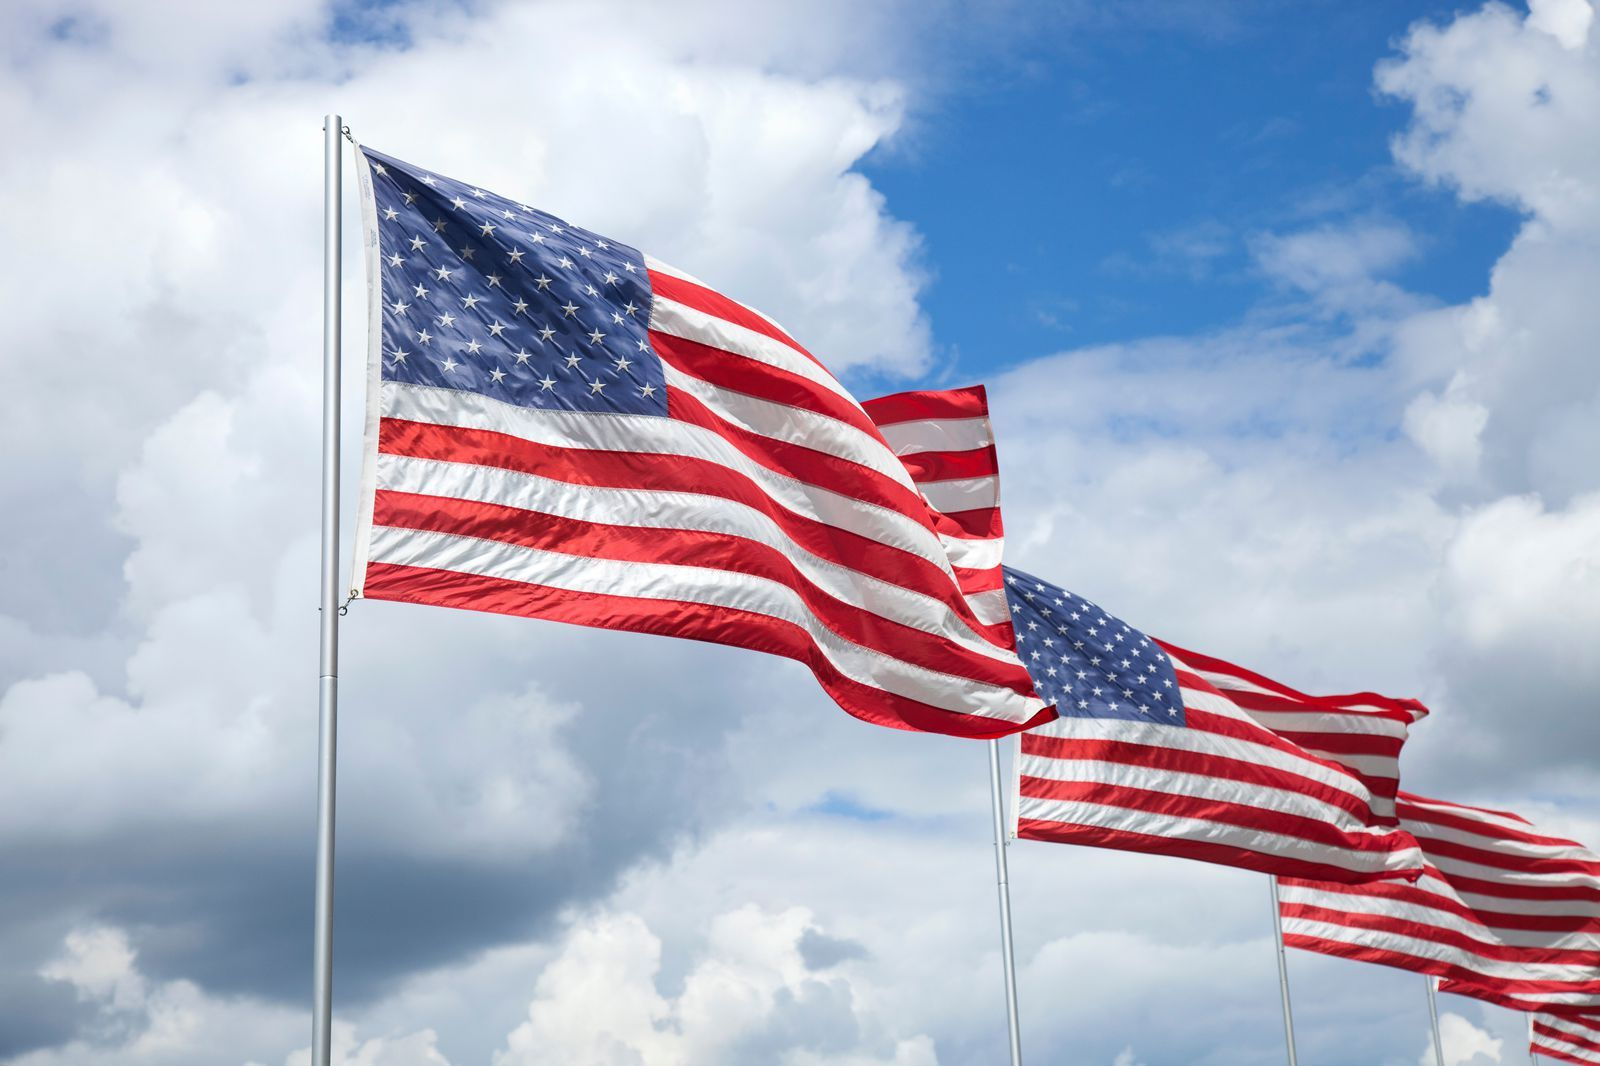 Do you know how to properly display the american flag